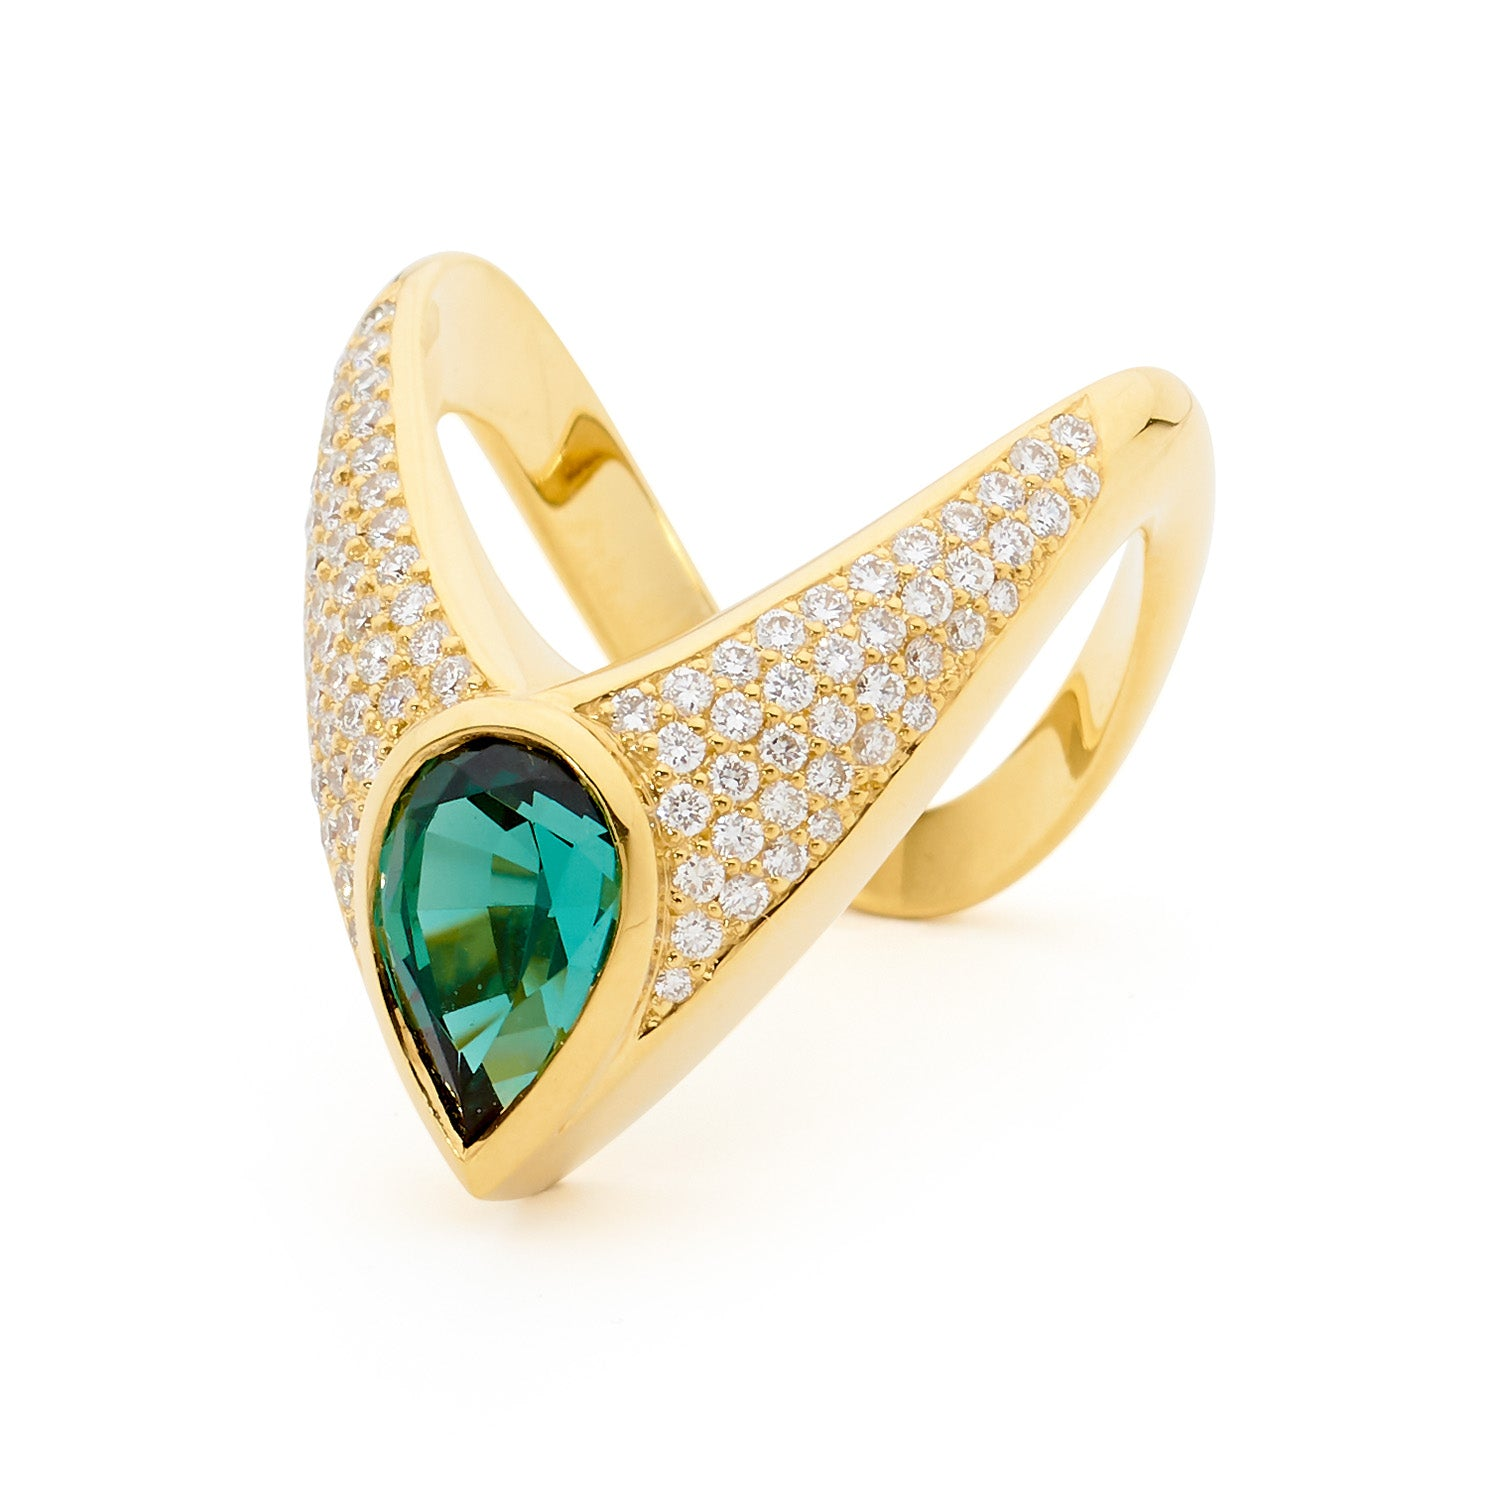 AVA GREEN PAVÉ DIAMONDS AND GREEN TOURMALINE RING